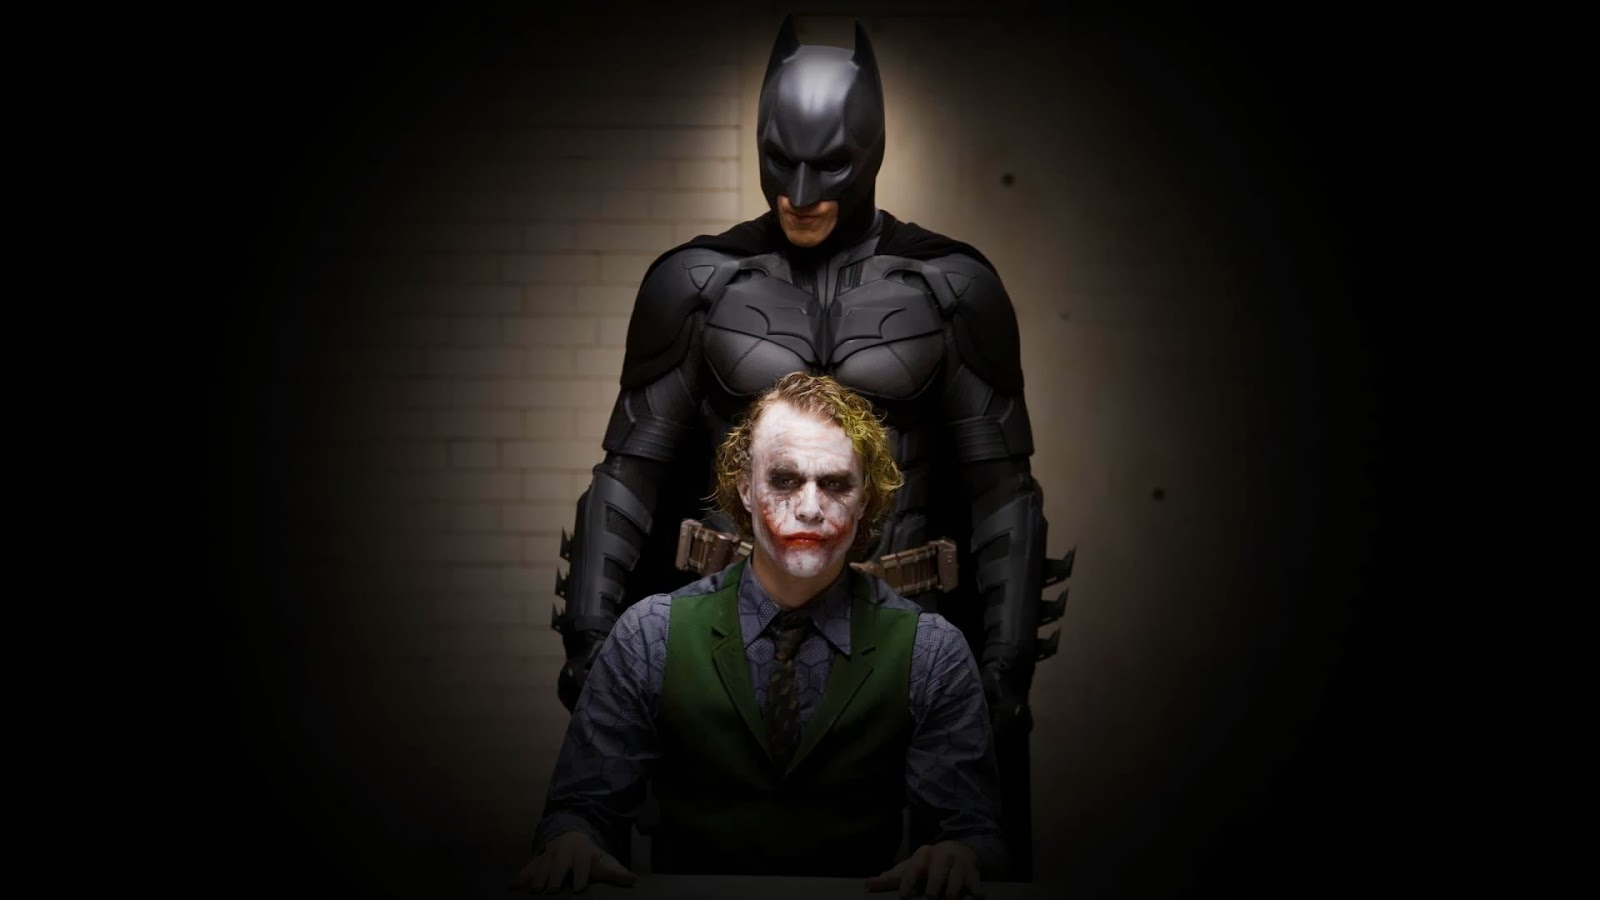 Admirer Of Stories: Why So Serious?!